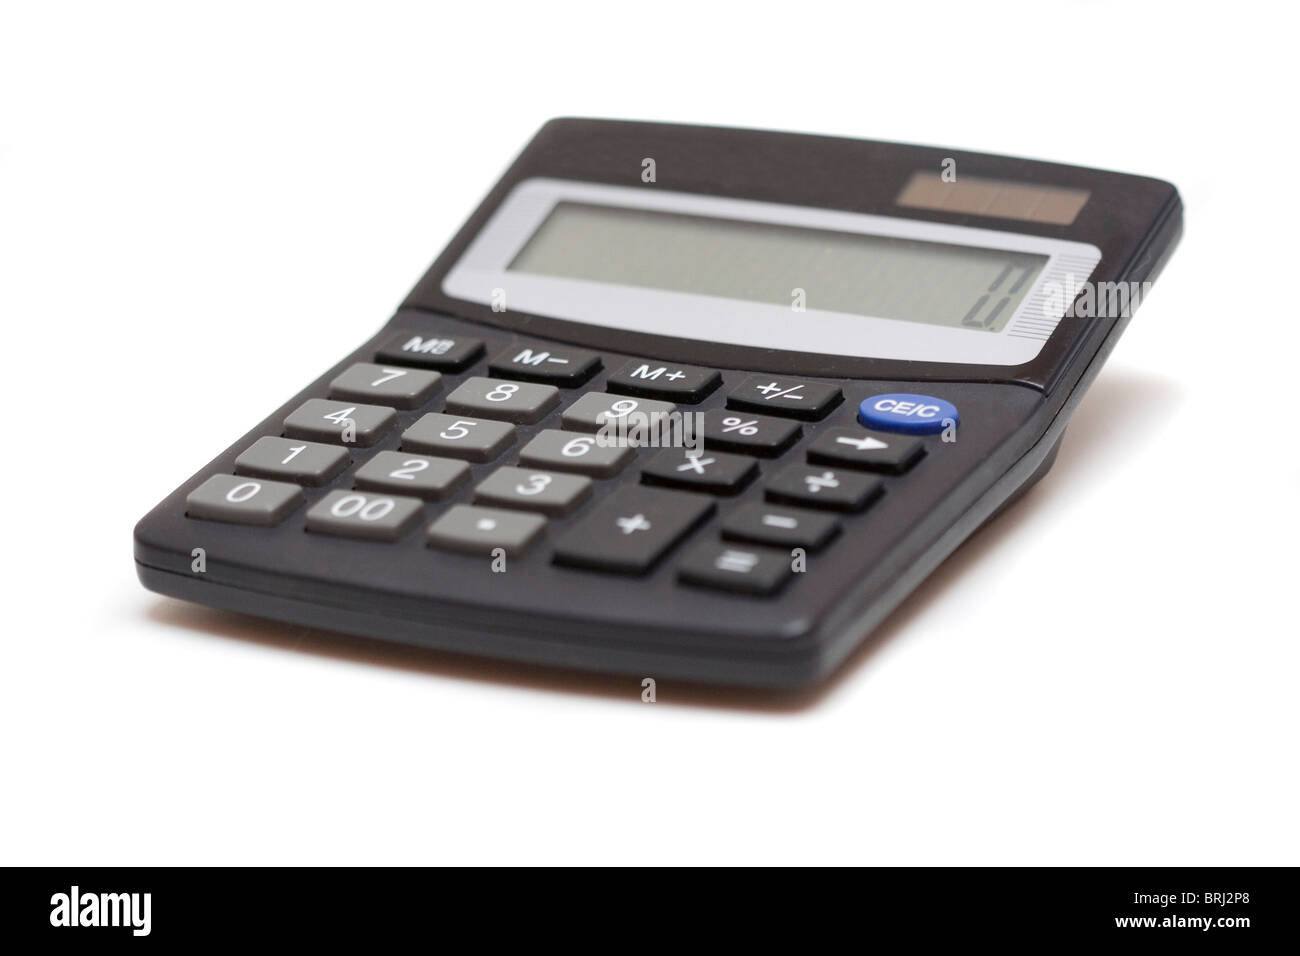 Calculator isolated over white, skew view - Stock Image